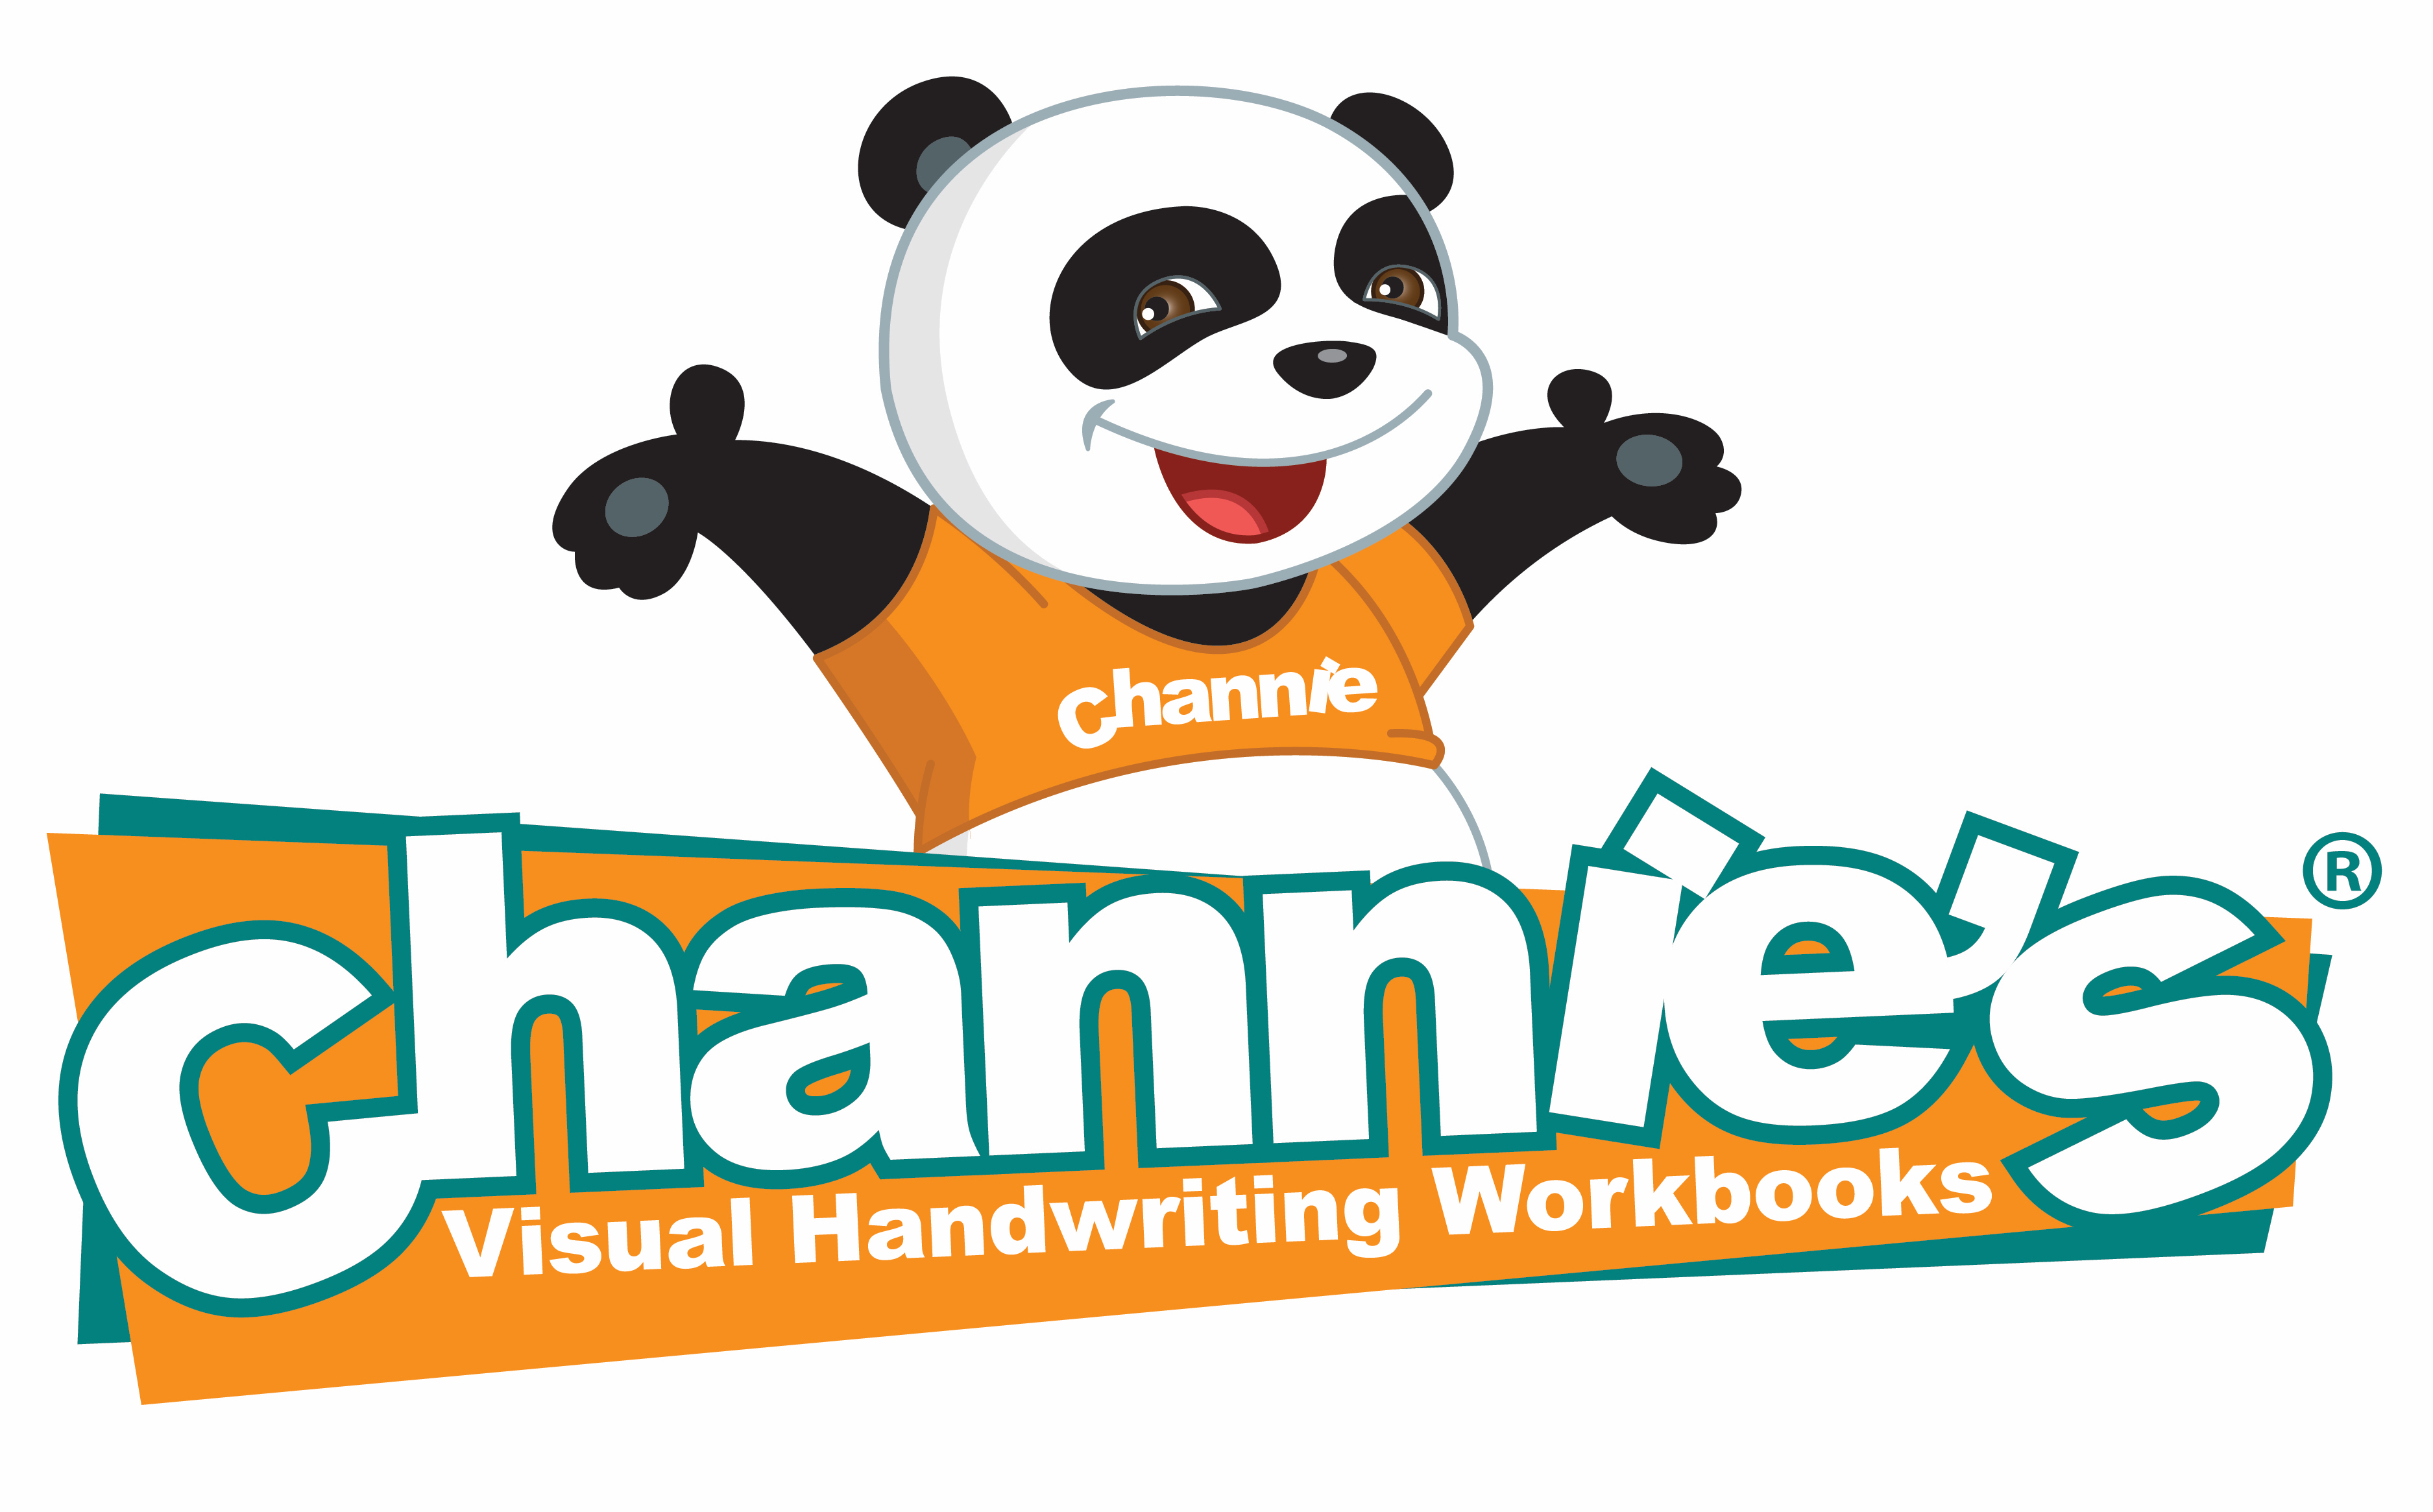 Channie's Visual Handwriting Workbooks